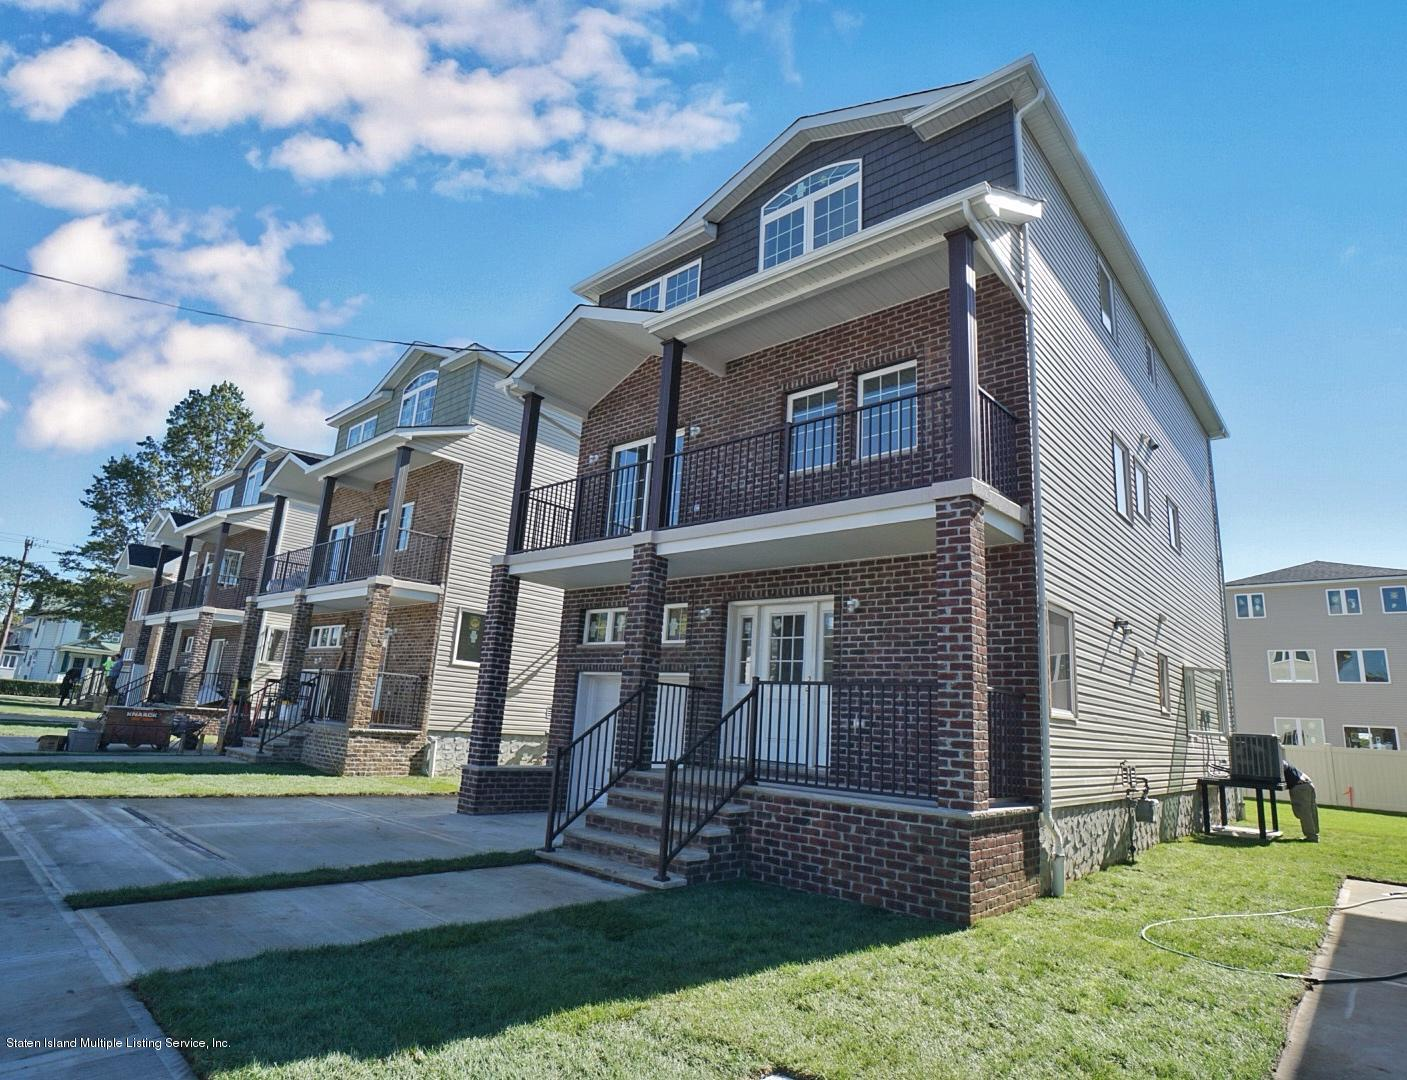 Single Family - Detached 409 Adelaide Avenue  Staten Island, NY 10306, MLS-1132455-2